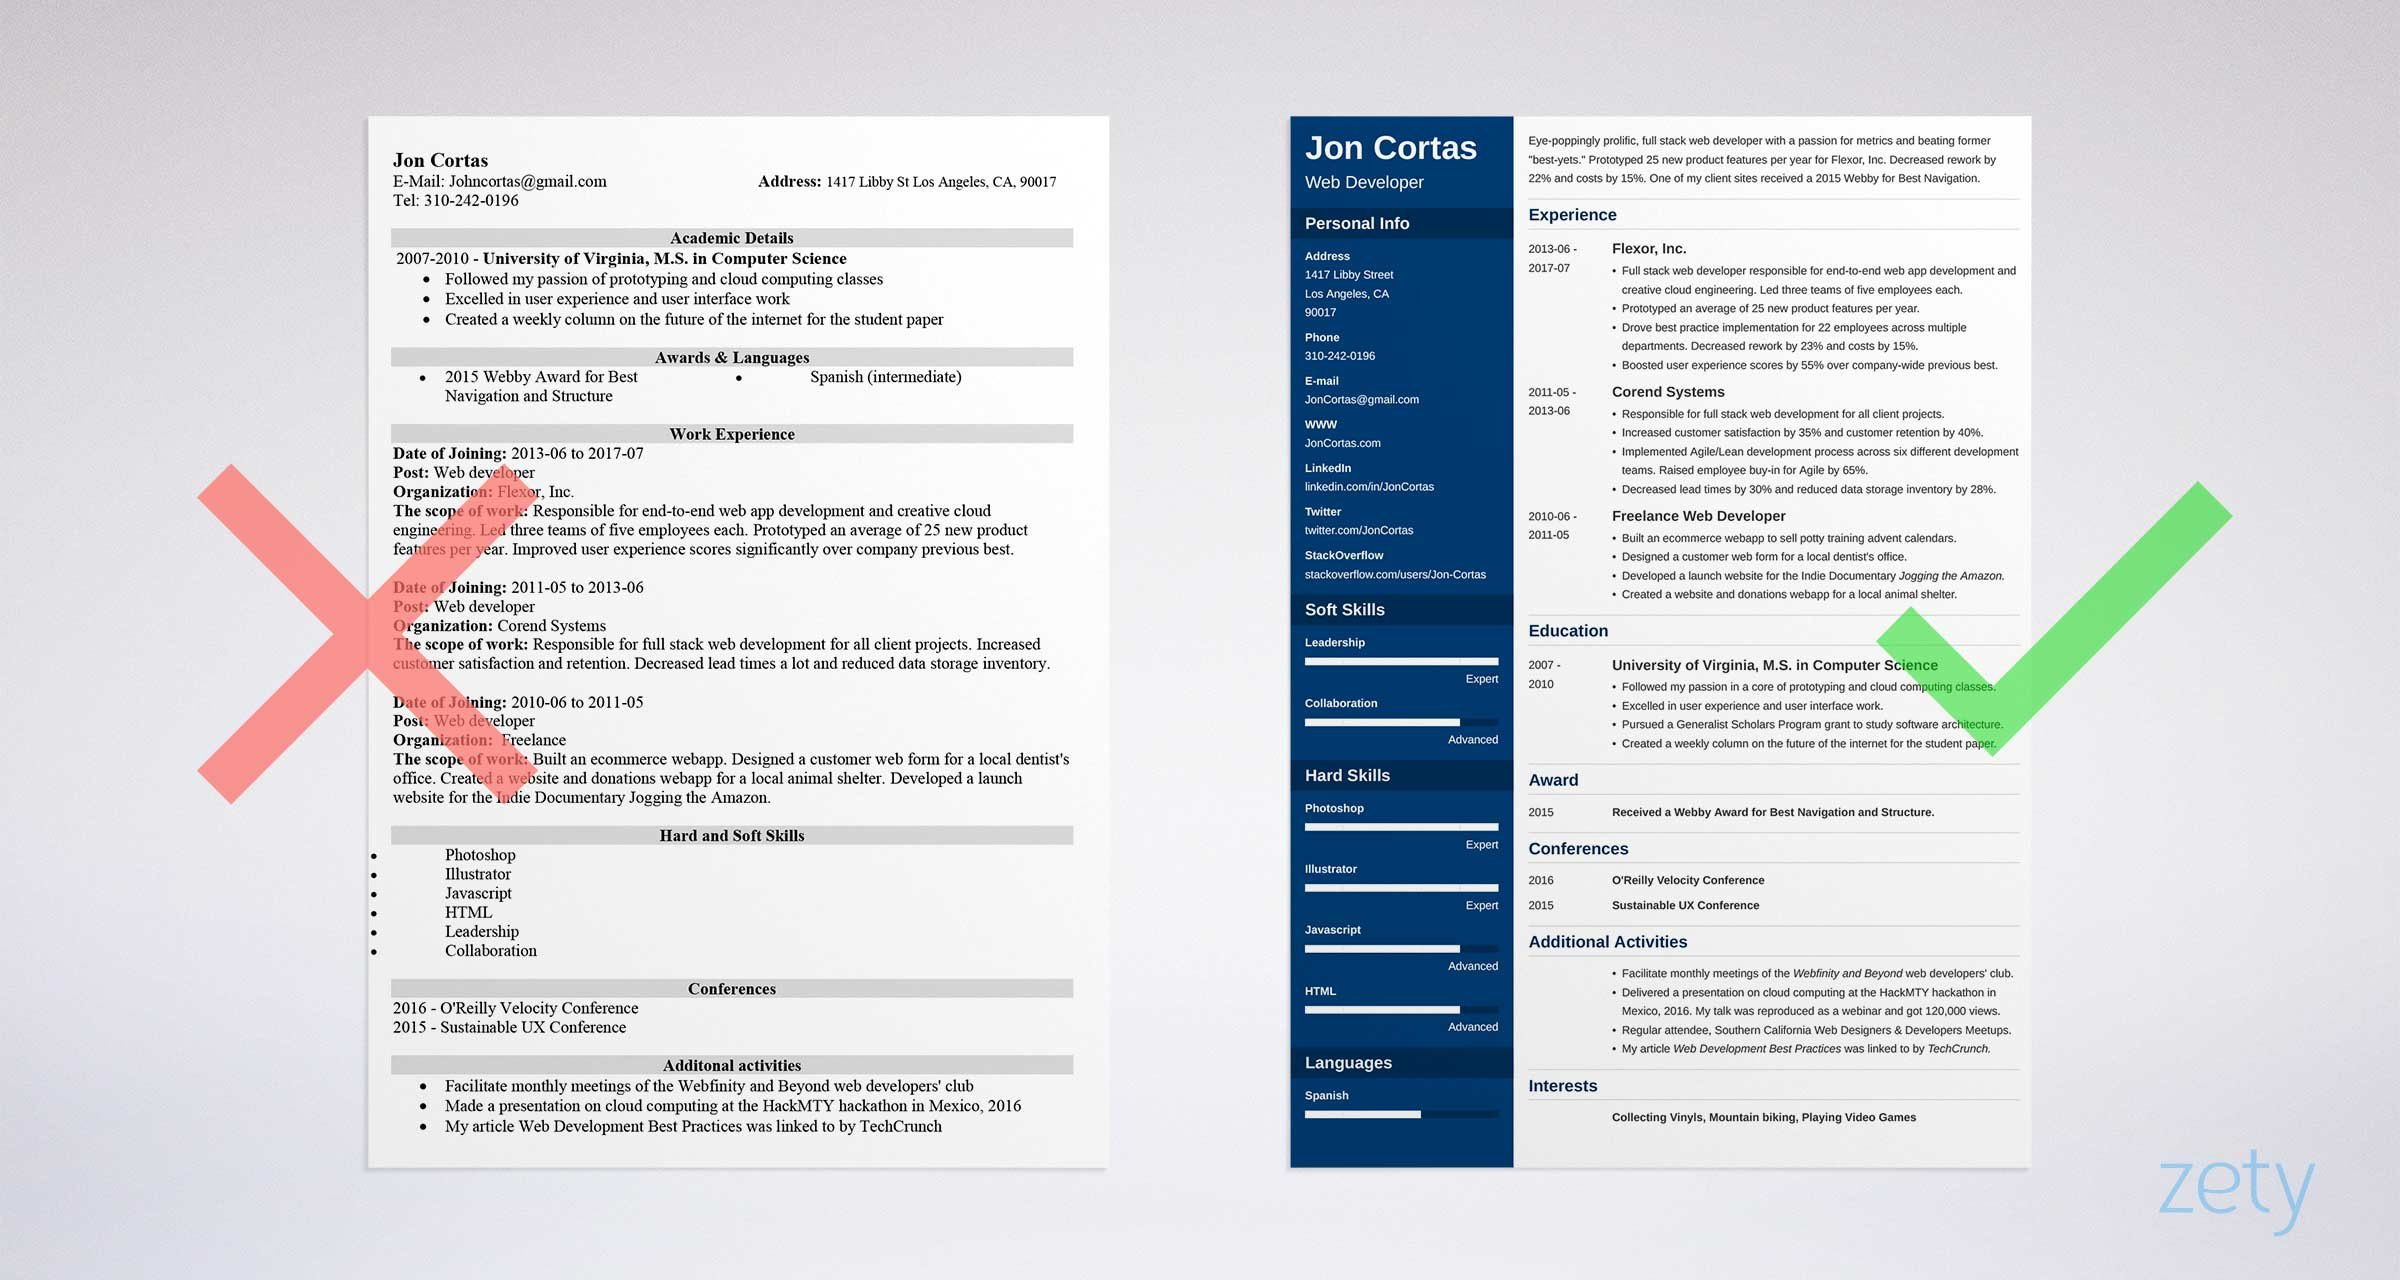 Modern Resume Examples Comparison. traditional elegance resume template. select template a sample template of a traditional resume. contemporary resume template. rsum wikipedia. select template a sample template of a blue skies resume